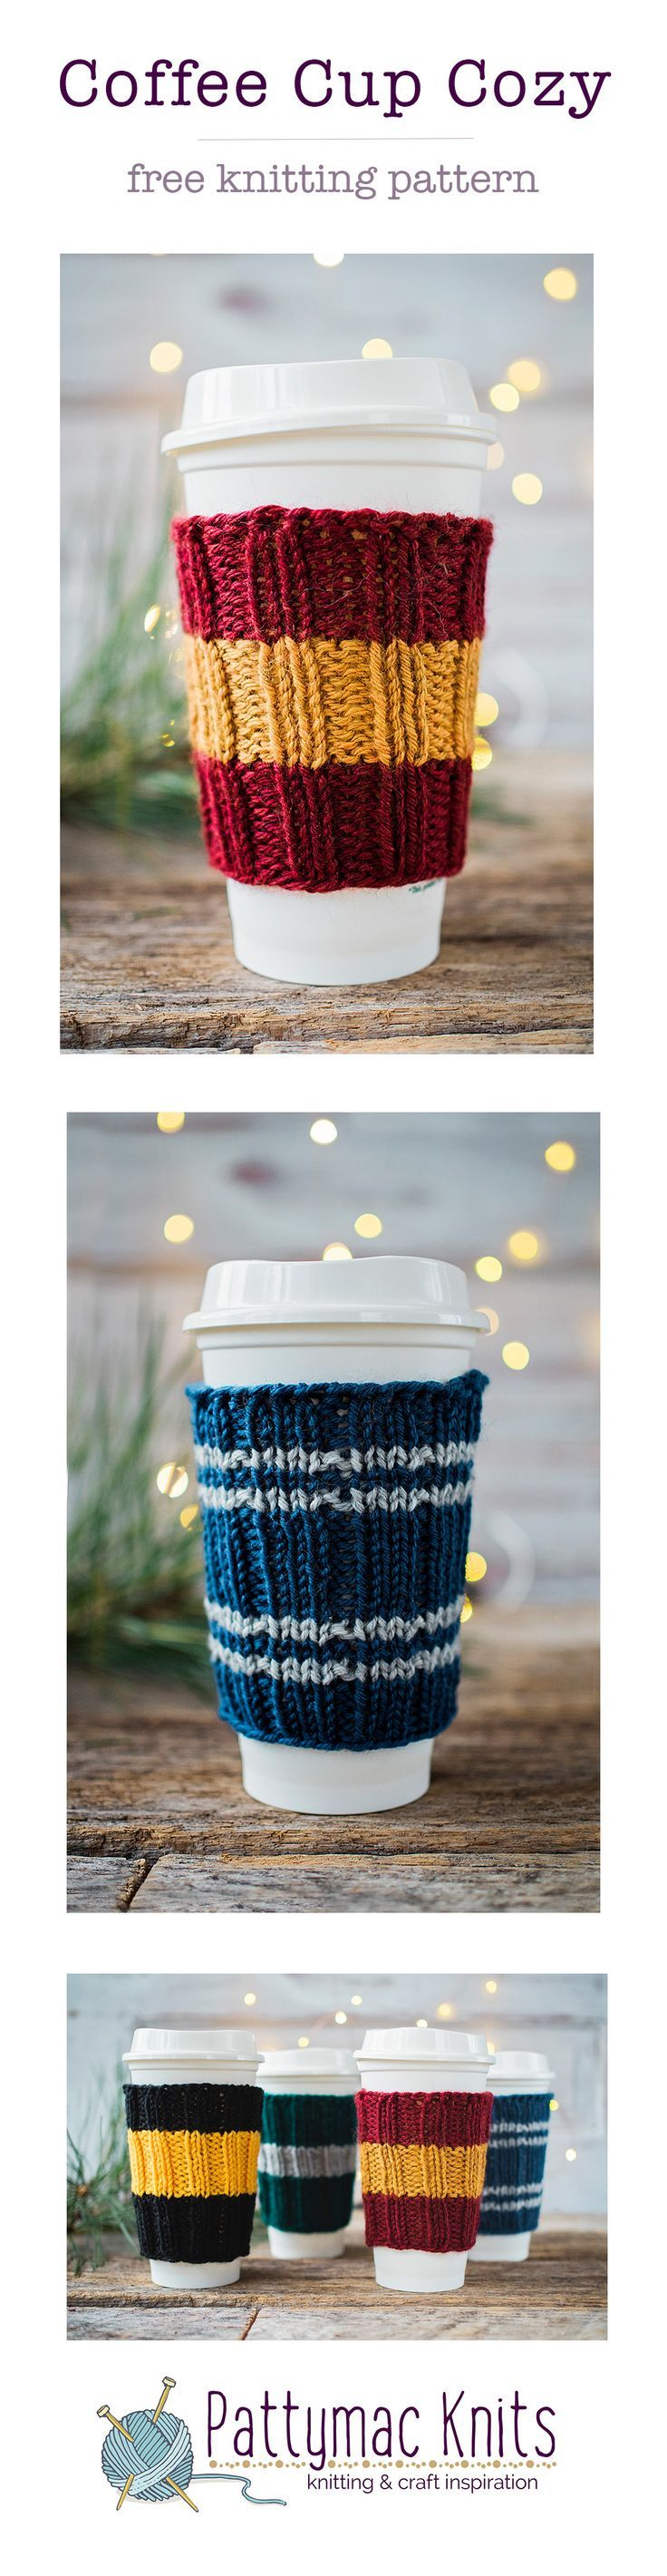 302 best Knitting Projects images on Pinterest | Knitting stitches ...